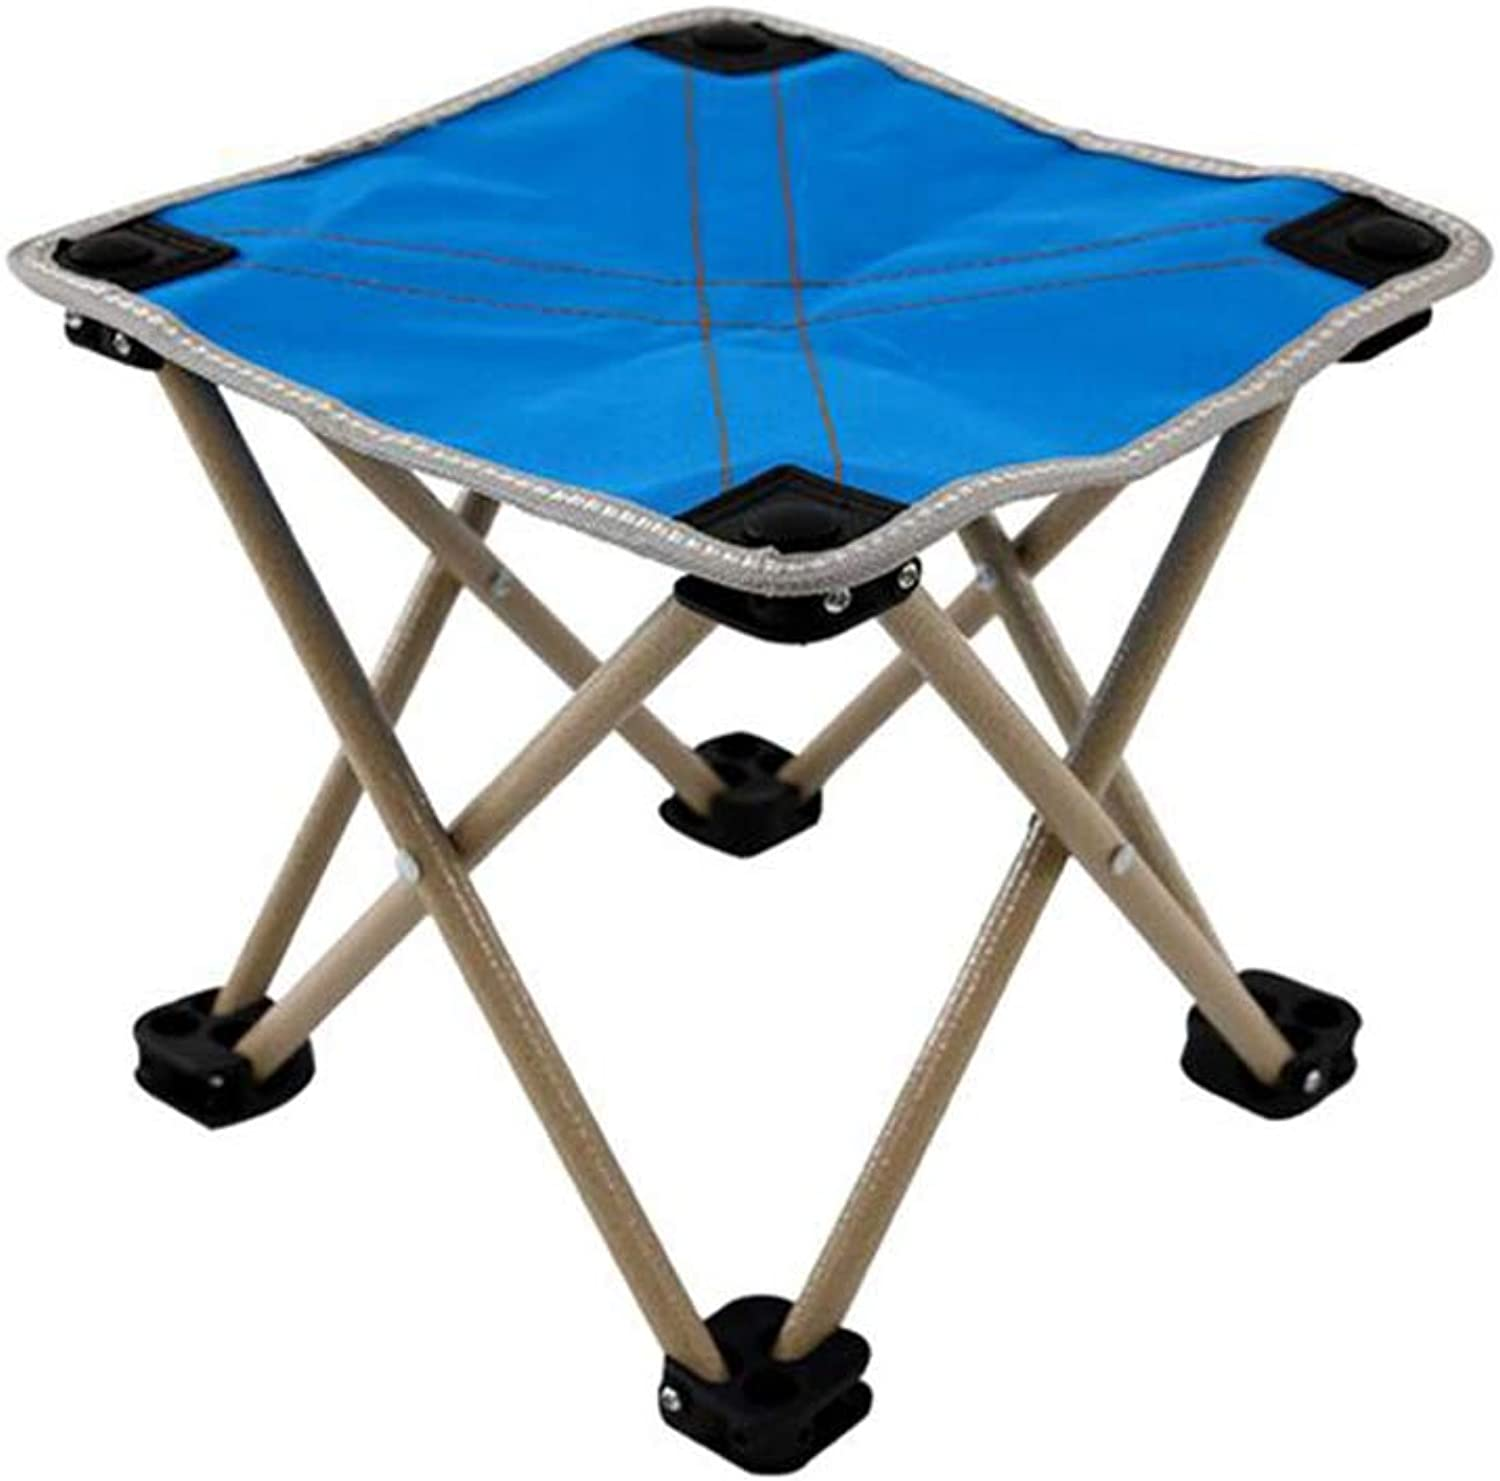 WGXX Chairs Stool Folding Seat Rest Portable Tripod Camping Sports Lightweight Mountaineering (color   bluee)